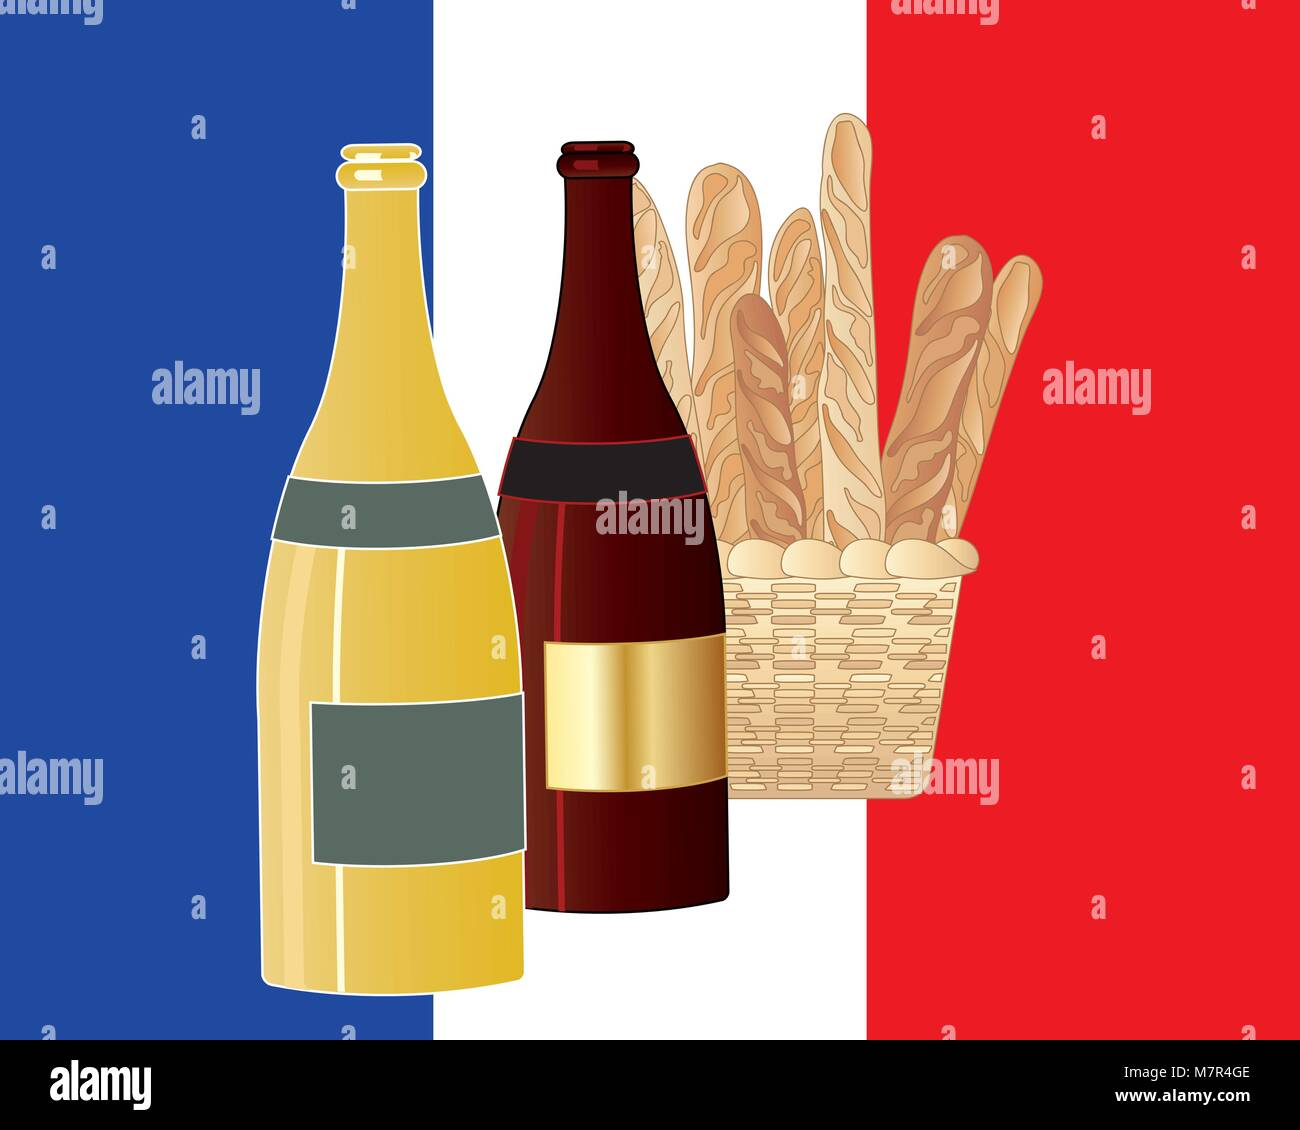 a vector illustration in eps 10 format of bottles of red and white wine with a basket of bread loaves on a French - Stock Image